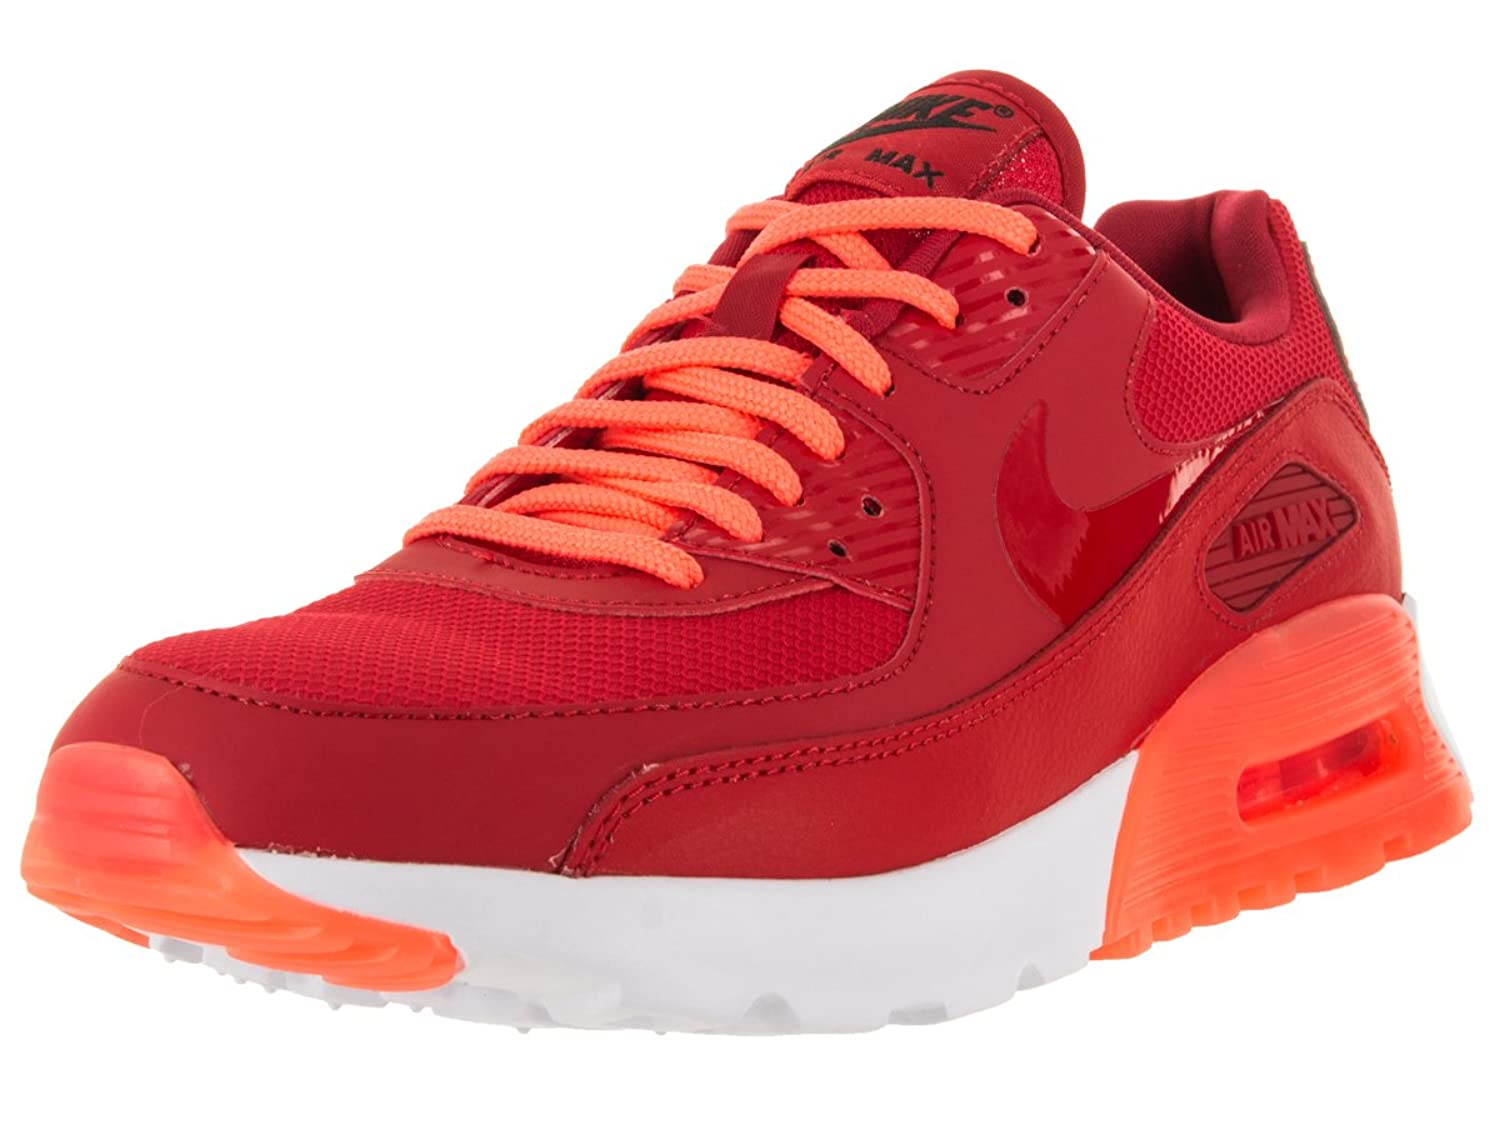 new product dc3f1 26b87 new Nike Air max 90 Ultra Essential 724981602, Basket